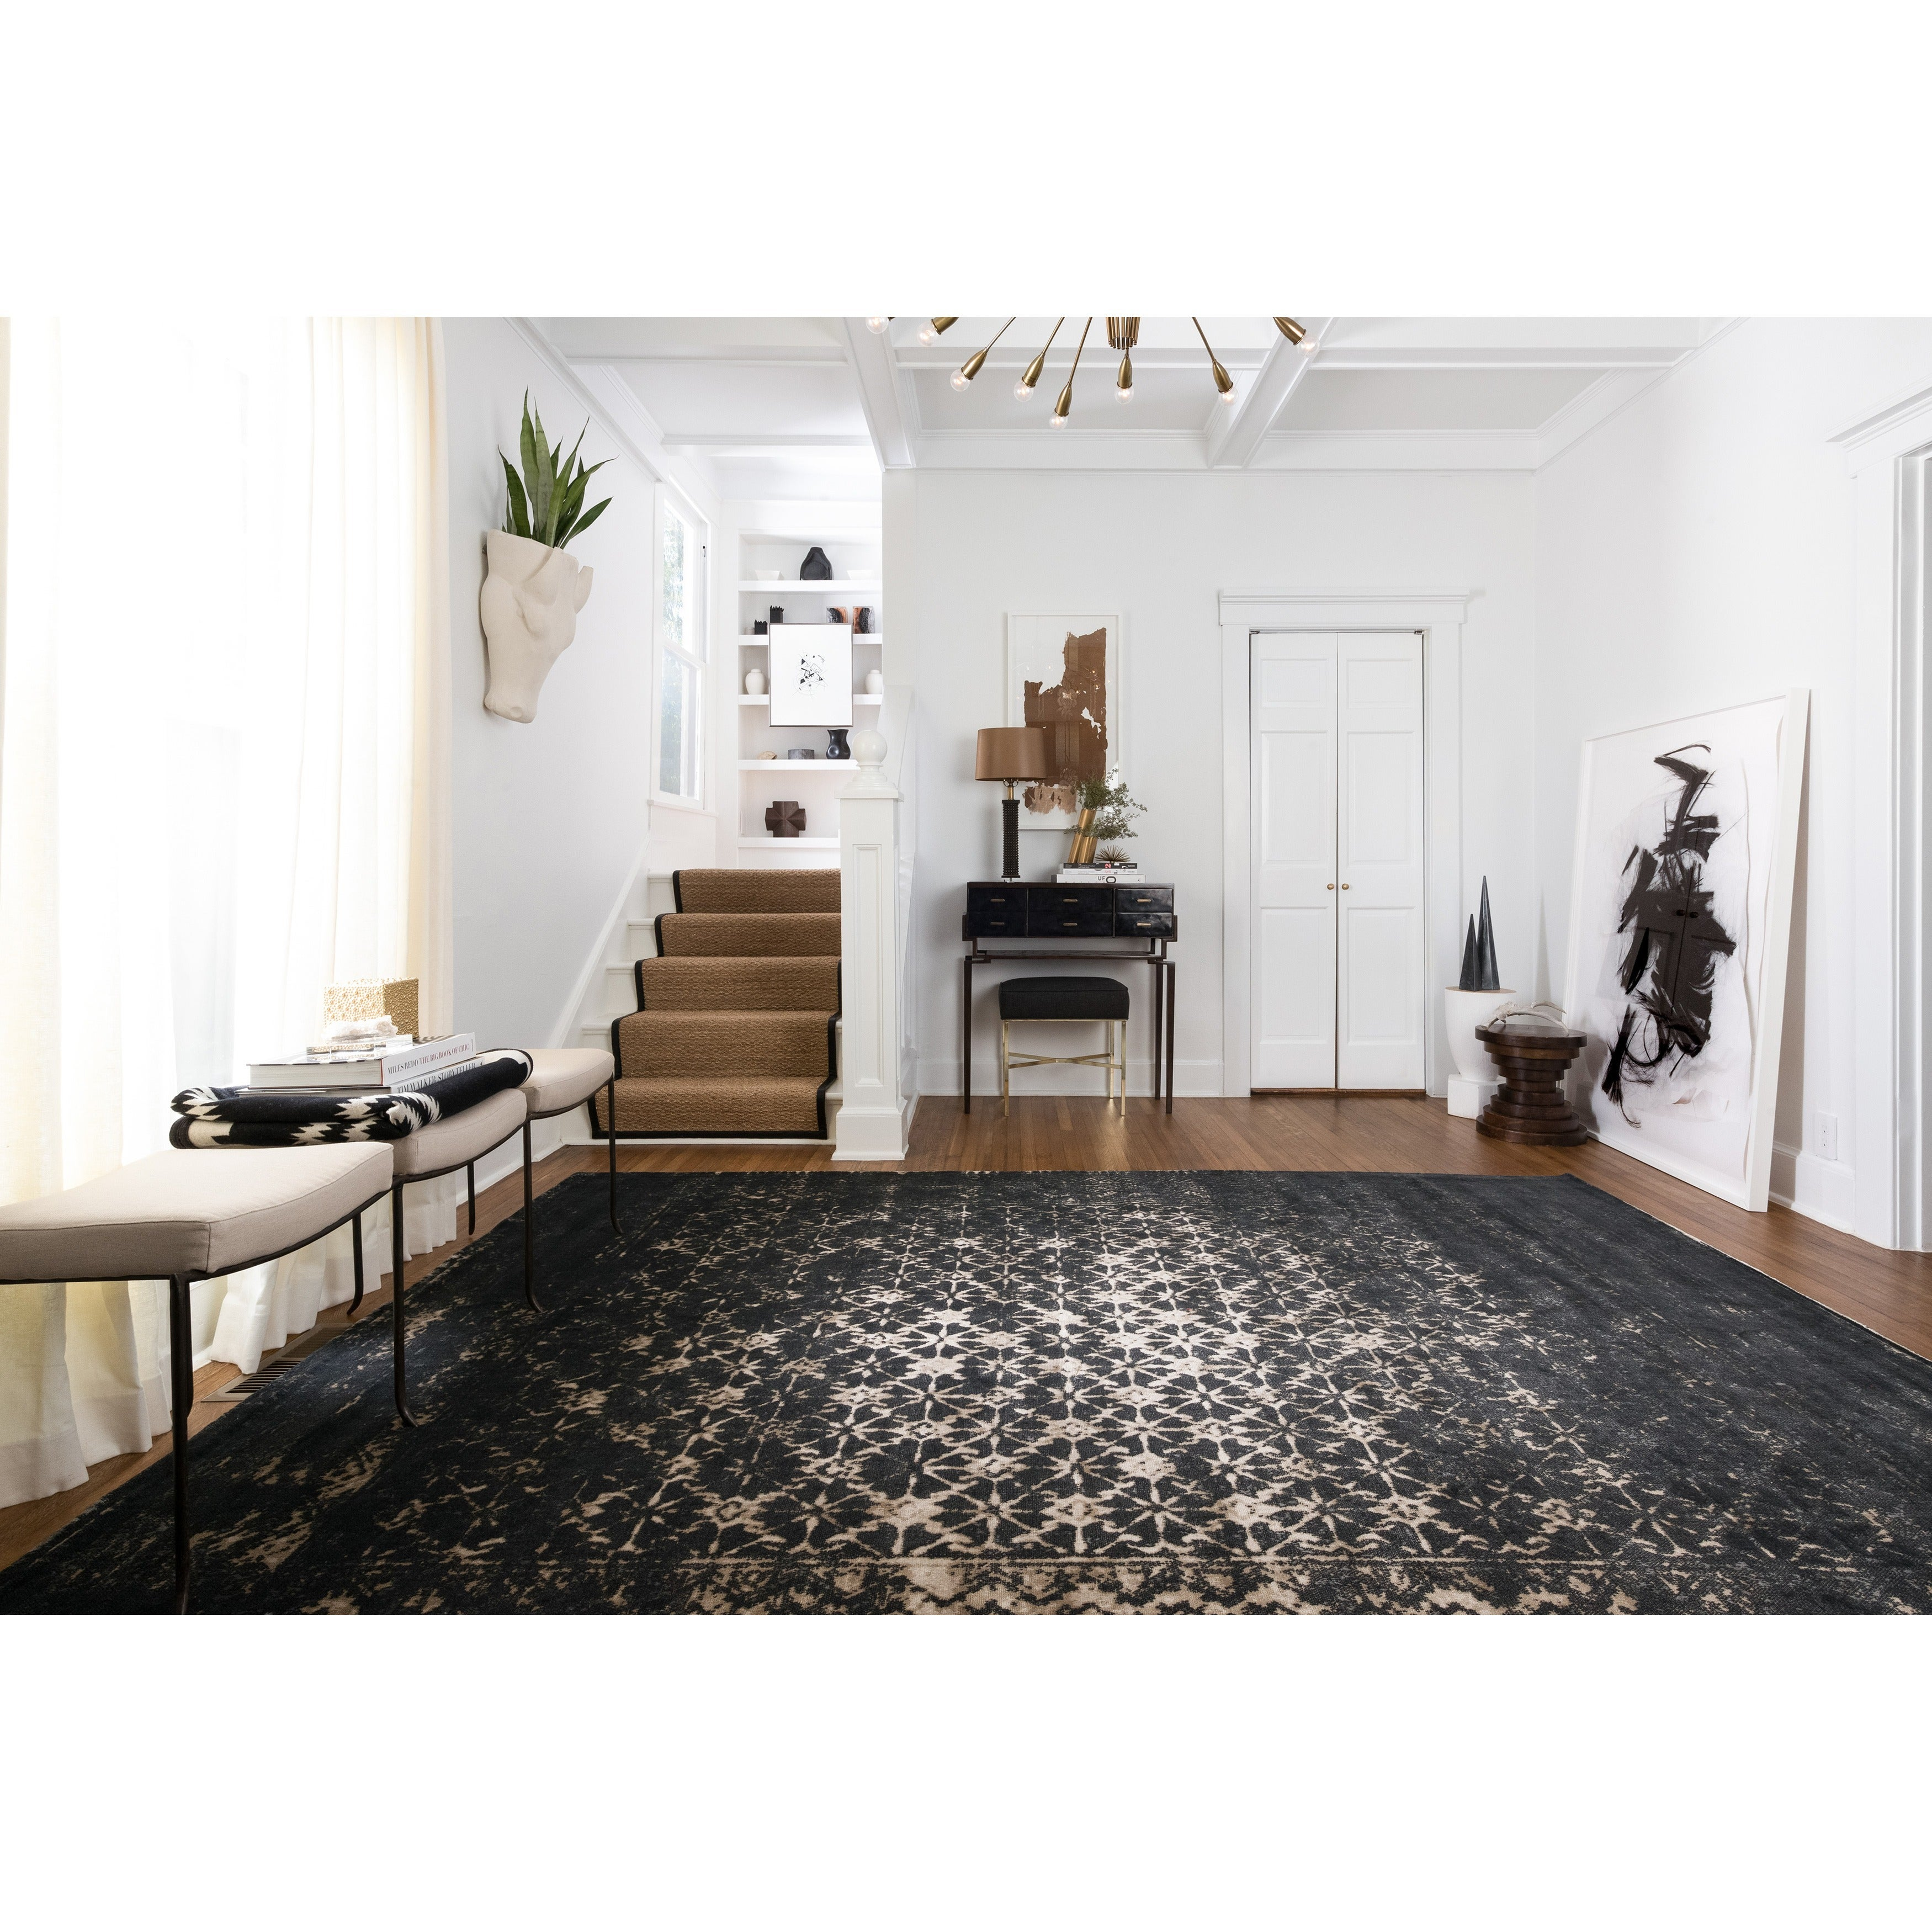 Emerson penrose rug 76 x 105 free shipping today overstock emerson penrose rug 76 x 105 free shipping today overstock 16945363 dailygadgetfo Image collections